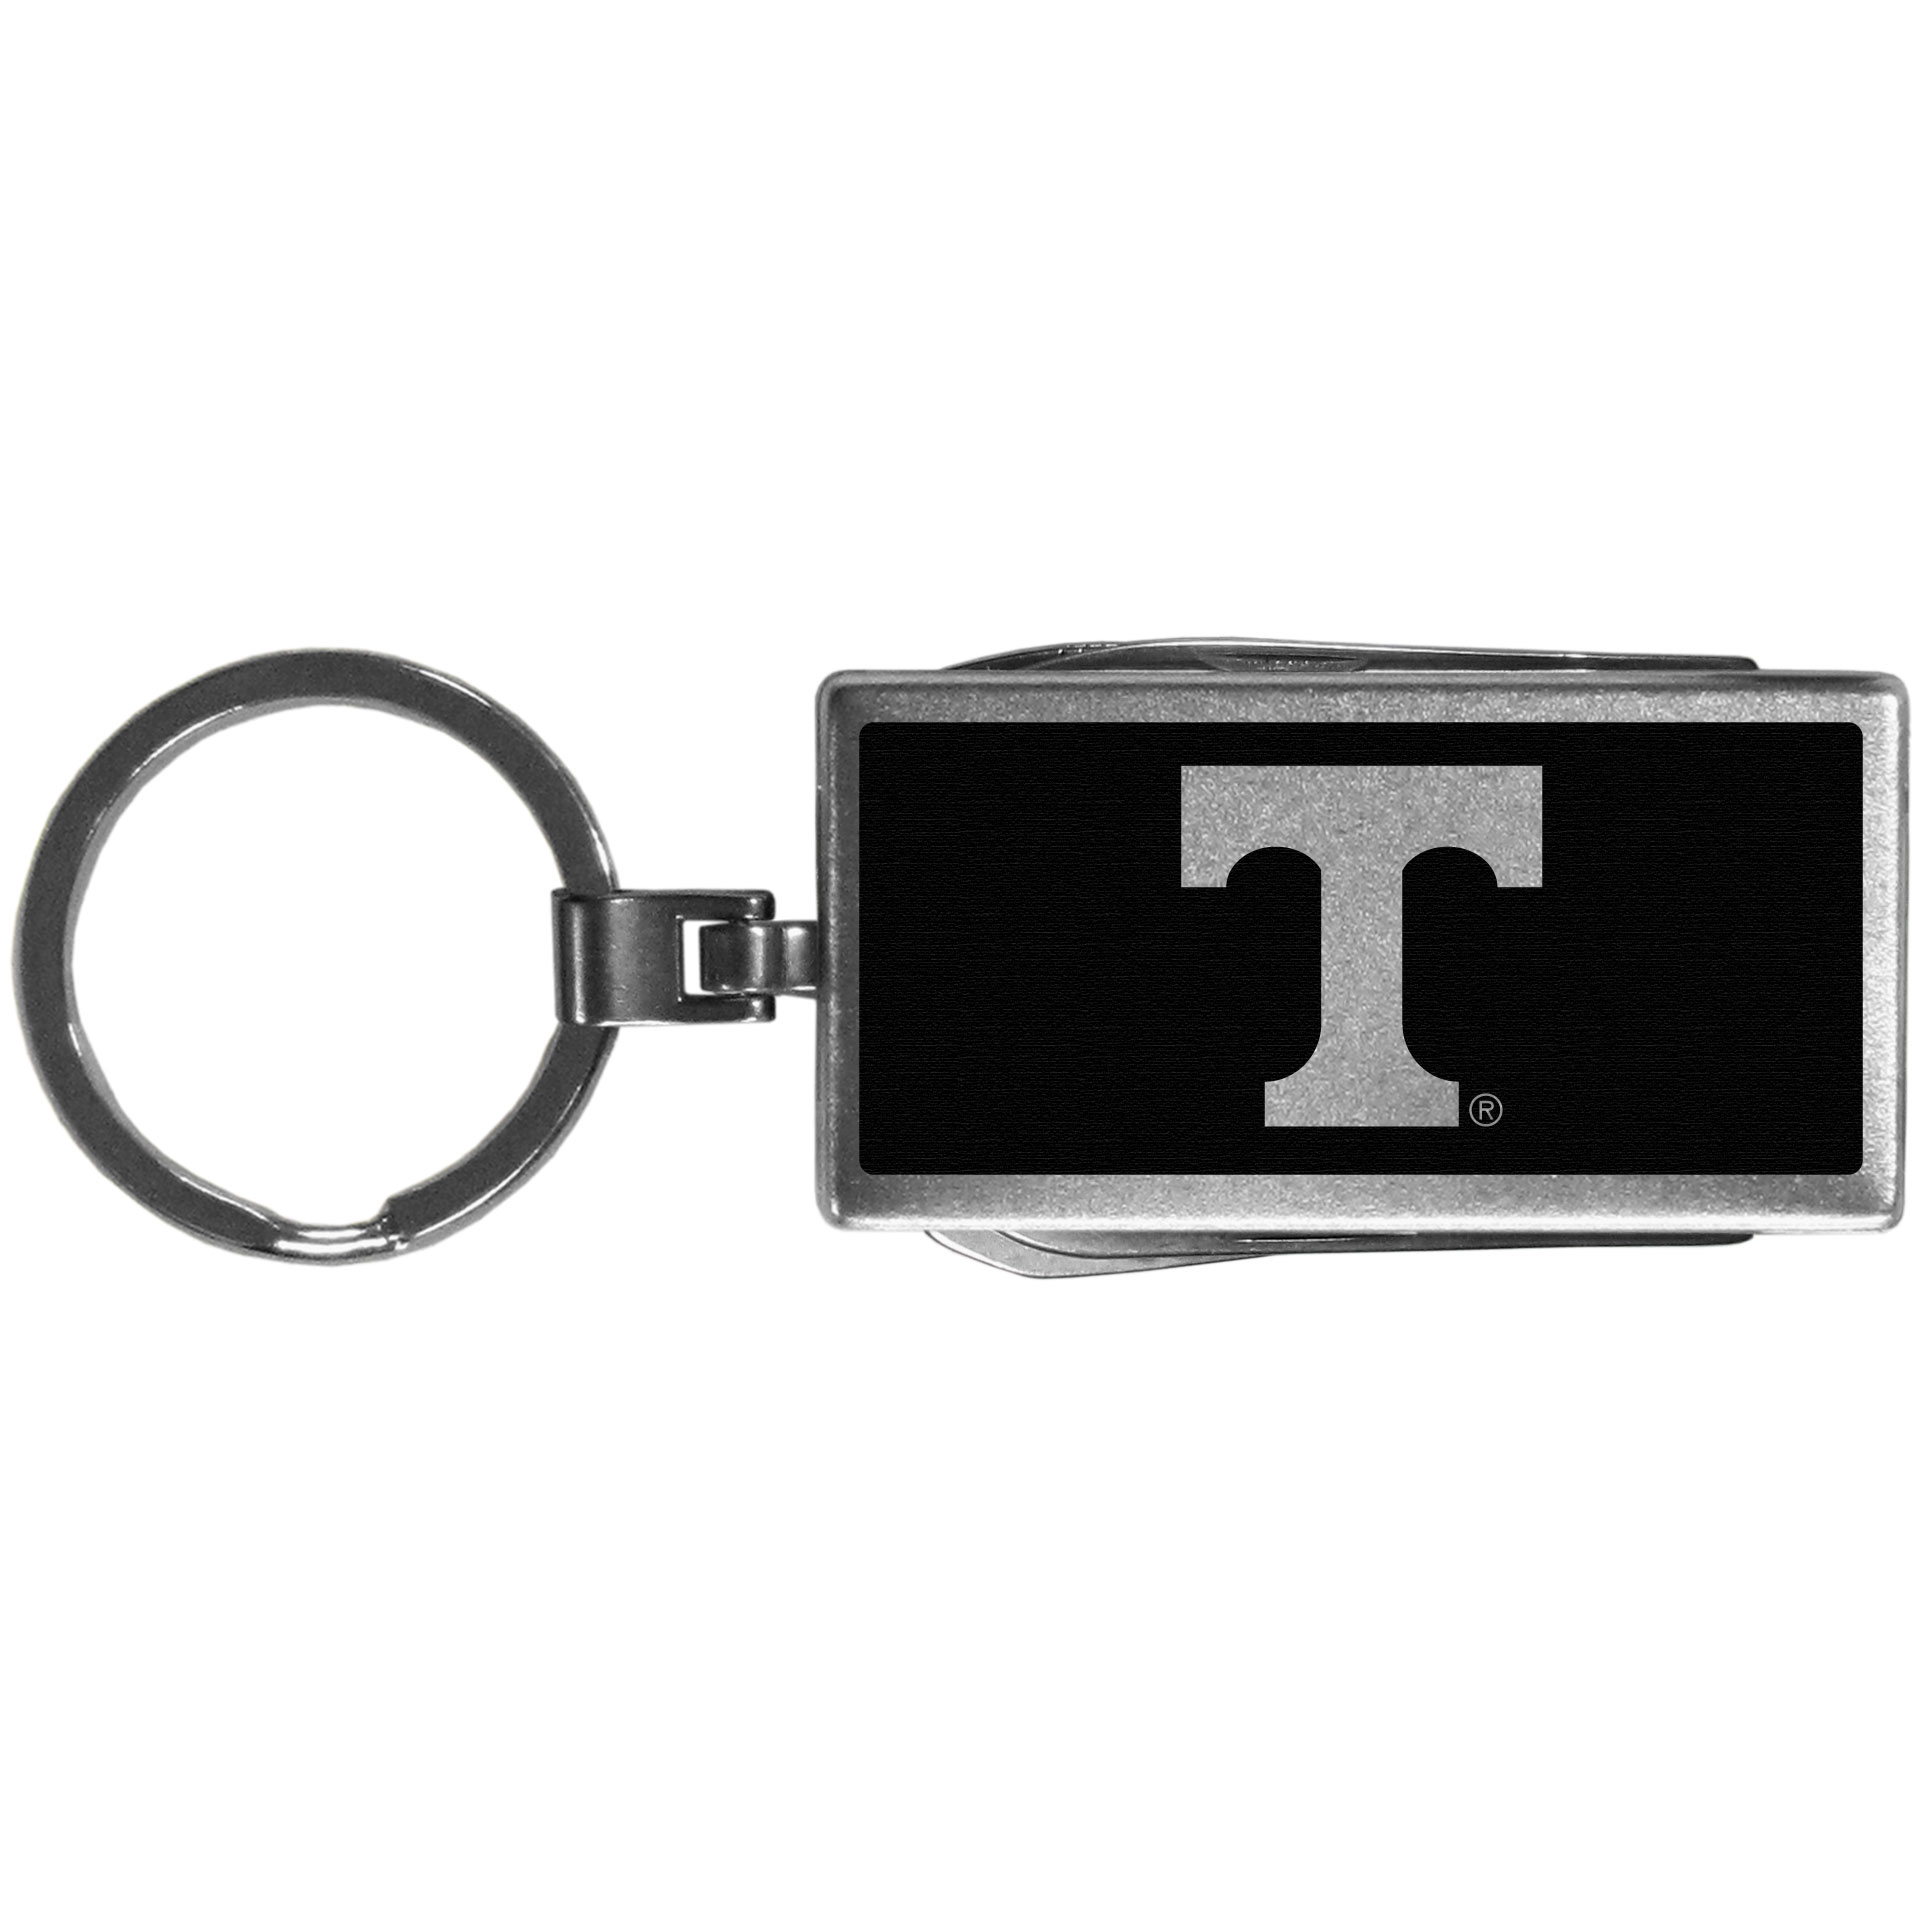 Tennessee Volunteers Multi-tool Key Chain, Black - Be the hero at the tailgate, camping, or on a Friday night with your Tennessee Volunteers Multi-Tool Keychain which comes complete with bottle opener, scissors, knife, nail file and screw driver. Be it opening a package or a beverage Siskiyou's Multi-Tool Keychain goes wherever your keys do. The keychain hangs at 4 inches long when closed.